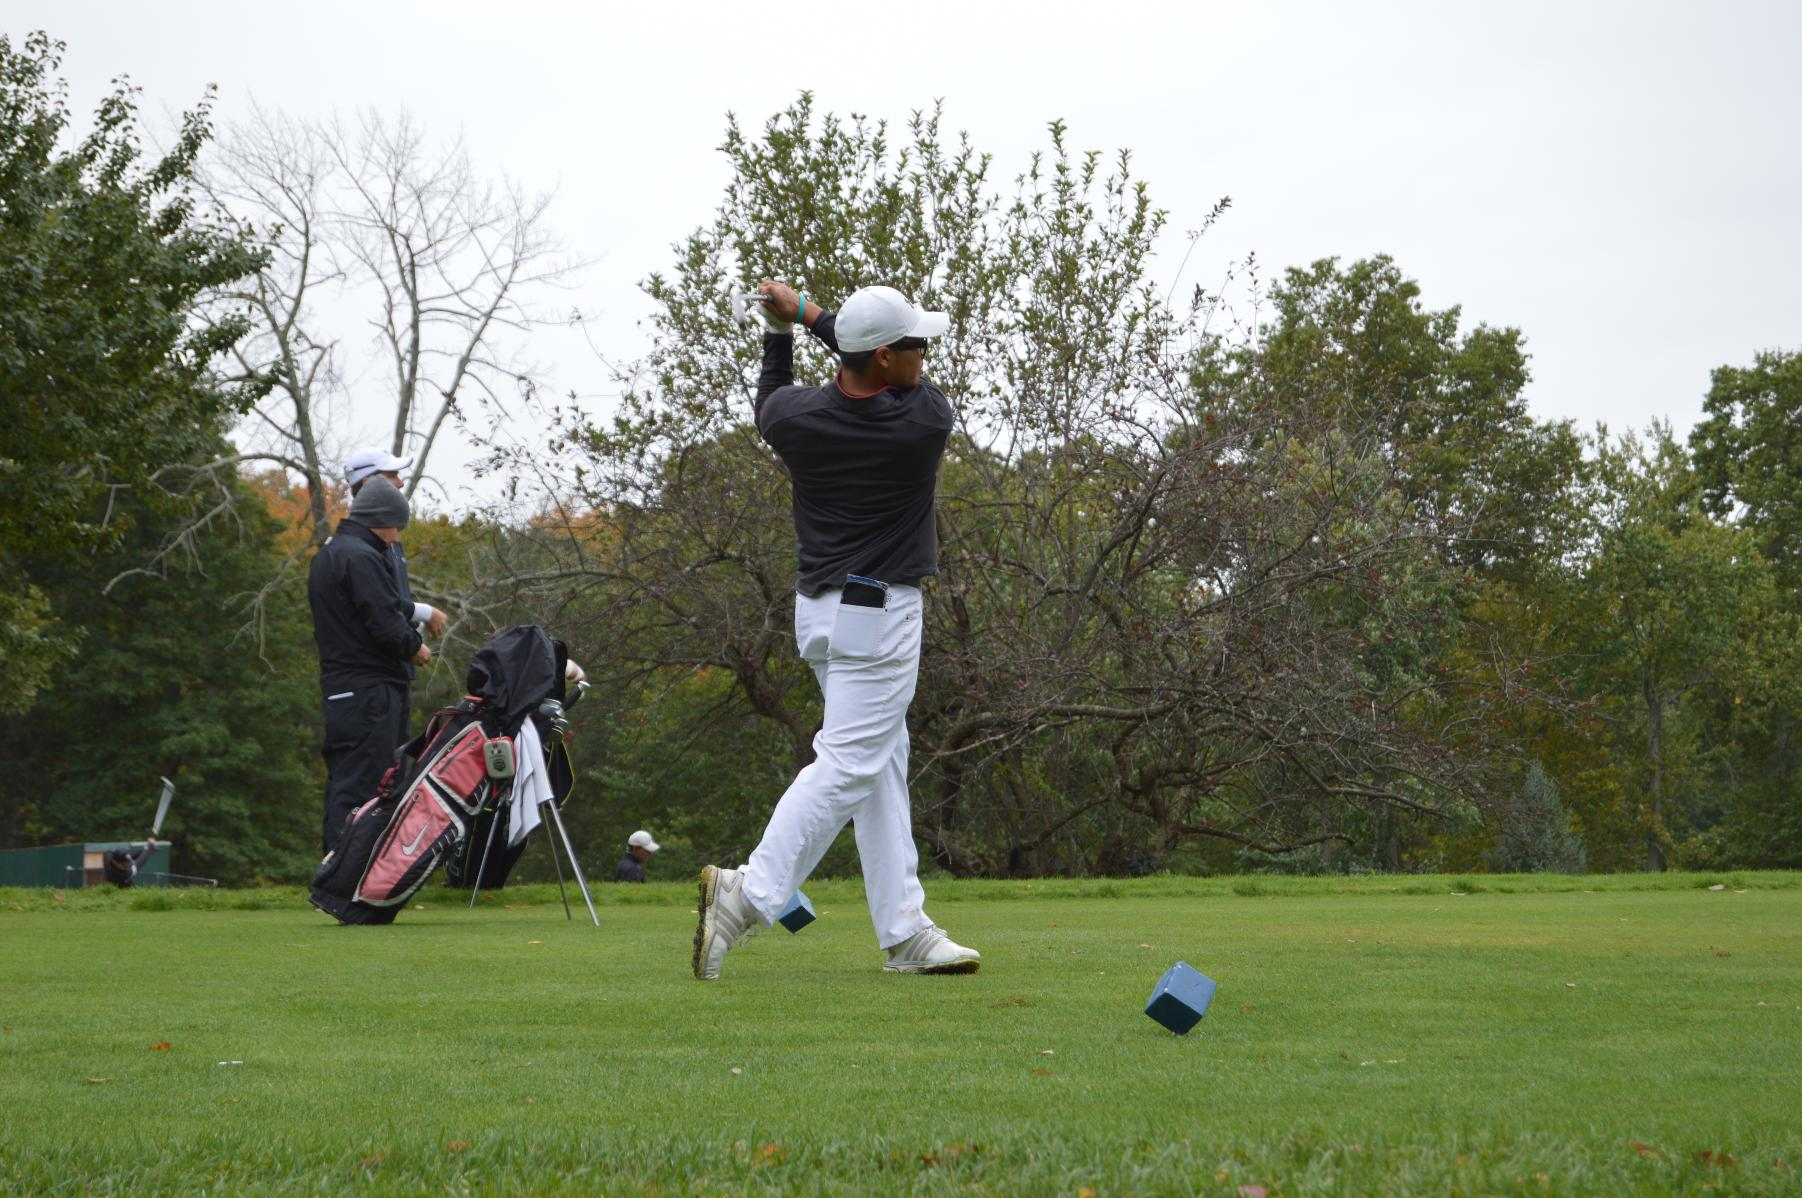 GOLF TAKES SECOND IN CHARGER CHALLENGE